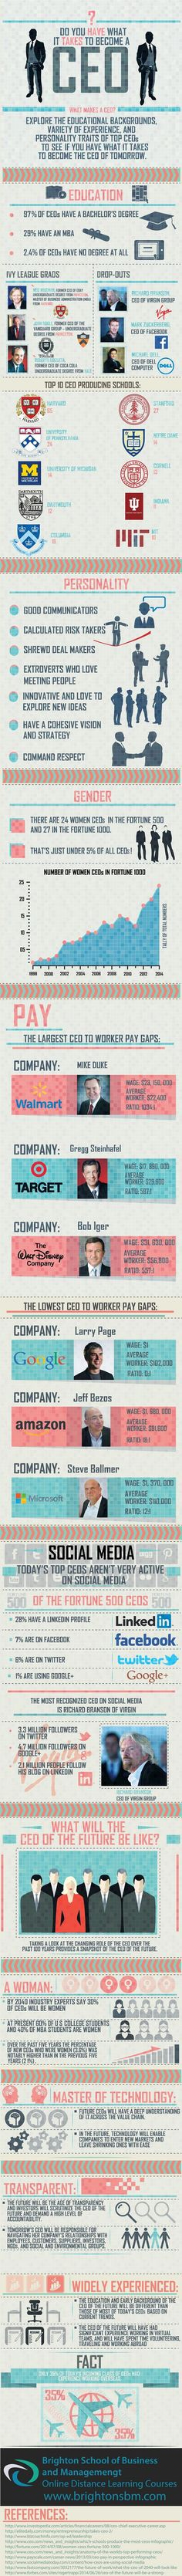 Are you CEO material? See CEO characteristics. Do-you-have-what-it-takes-to-be-a-CEO-BSBM-Infographic